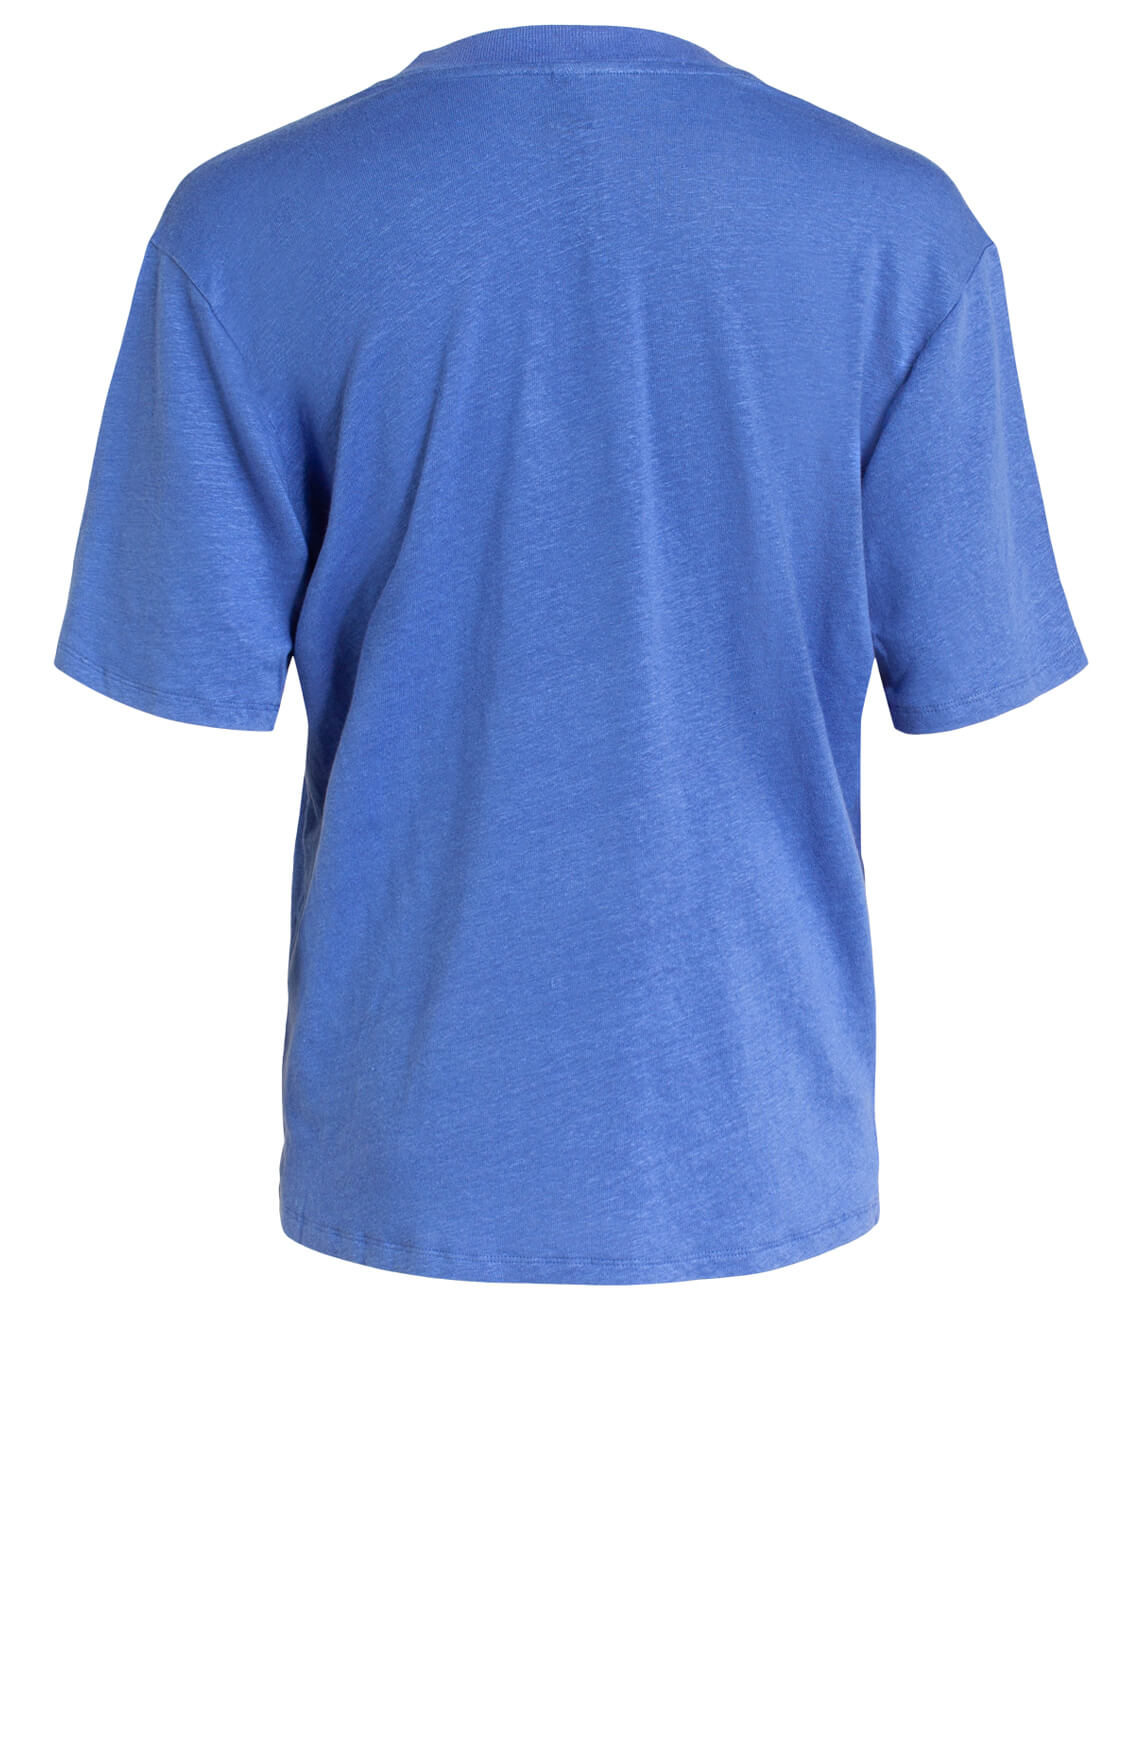 10 Days Dames Linnen shirt Blauw